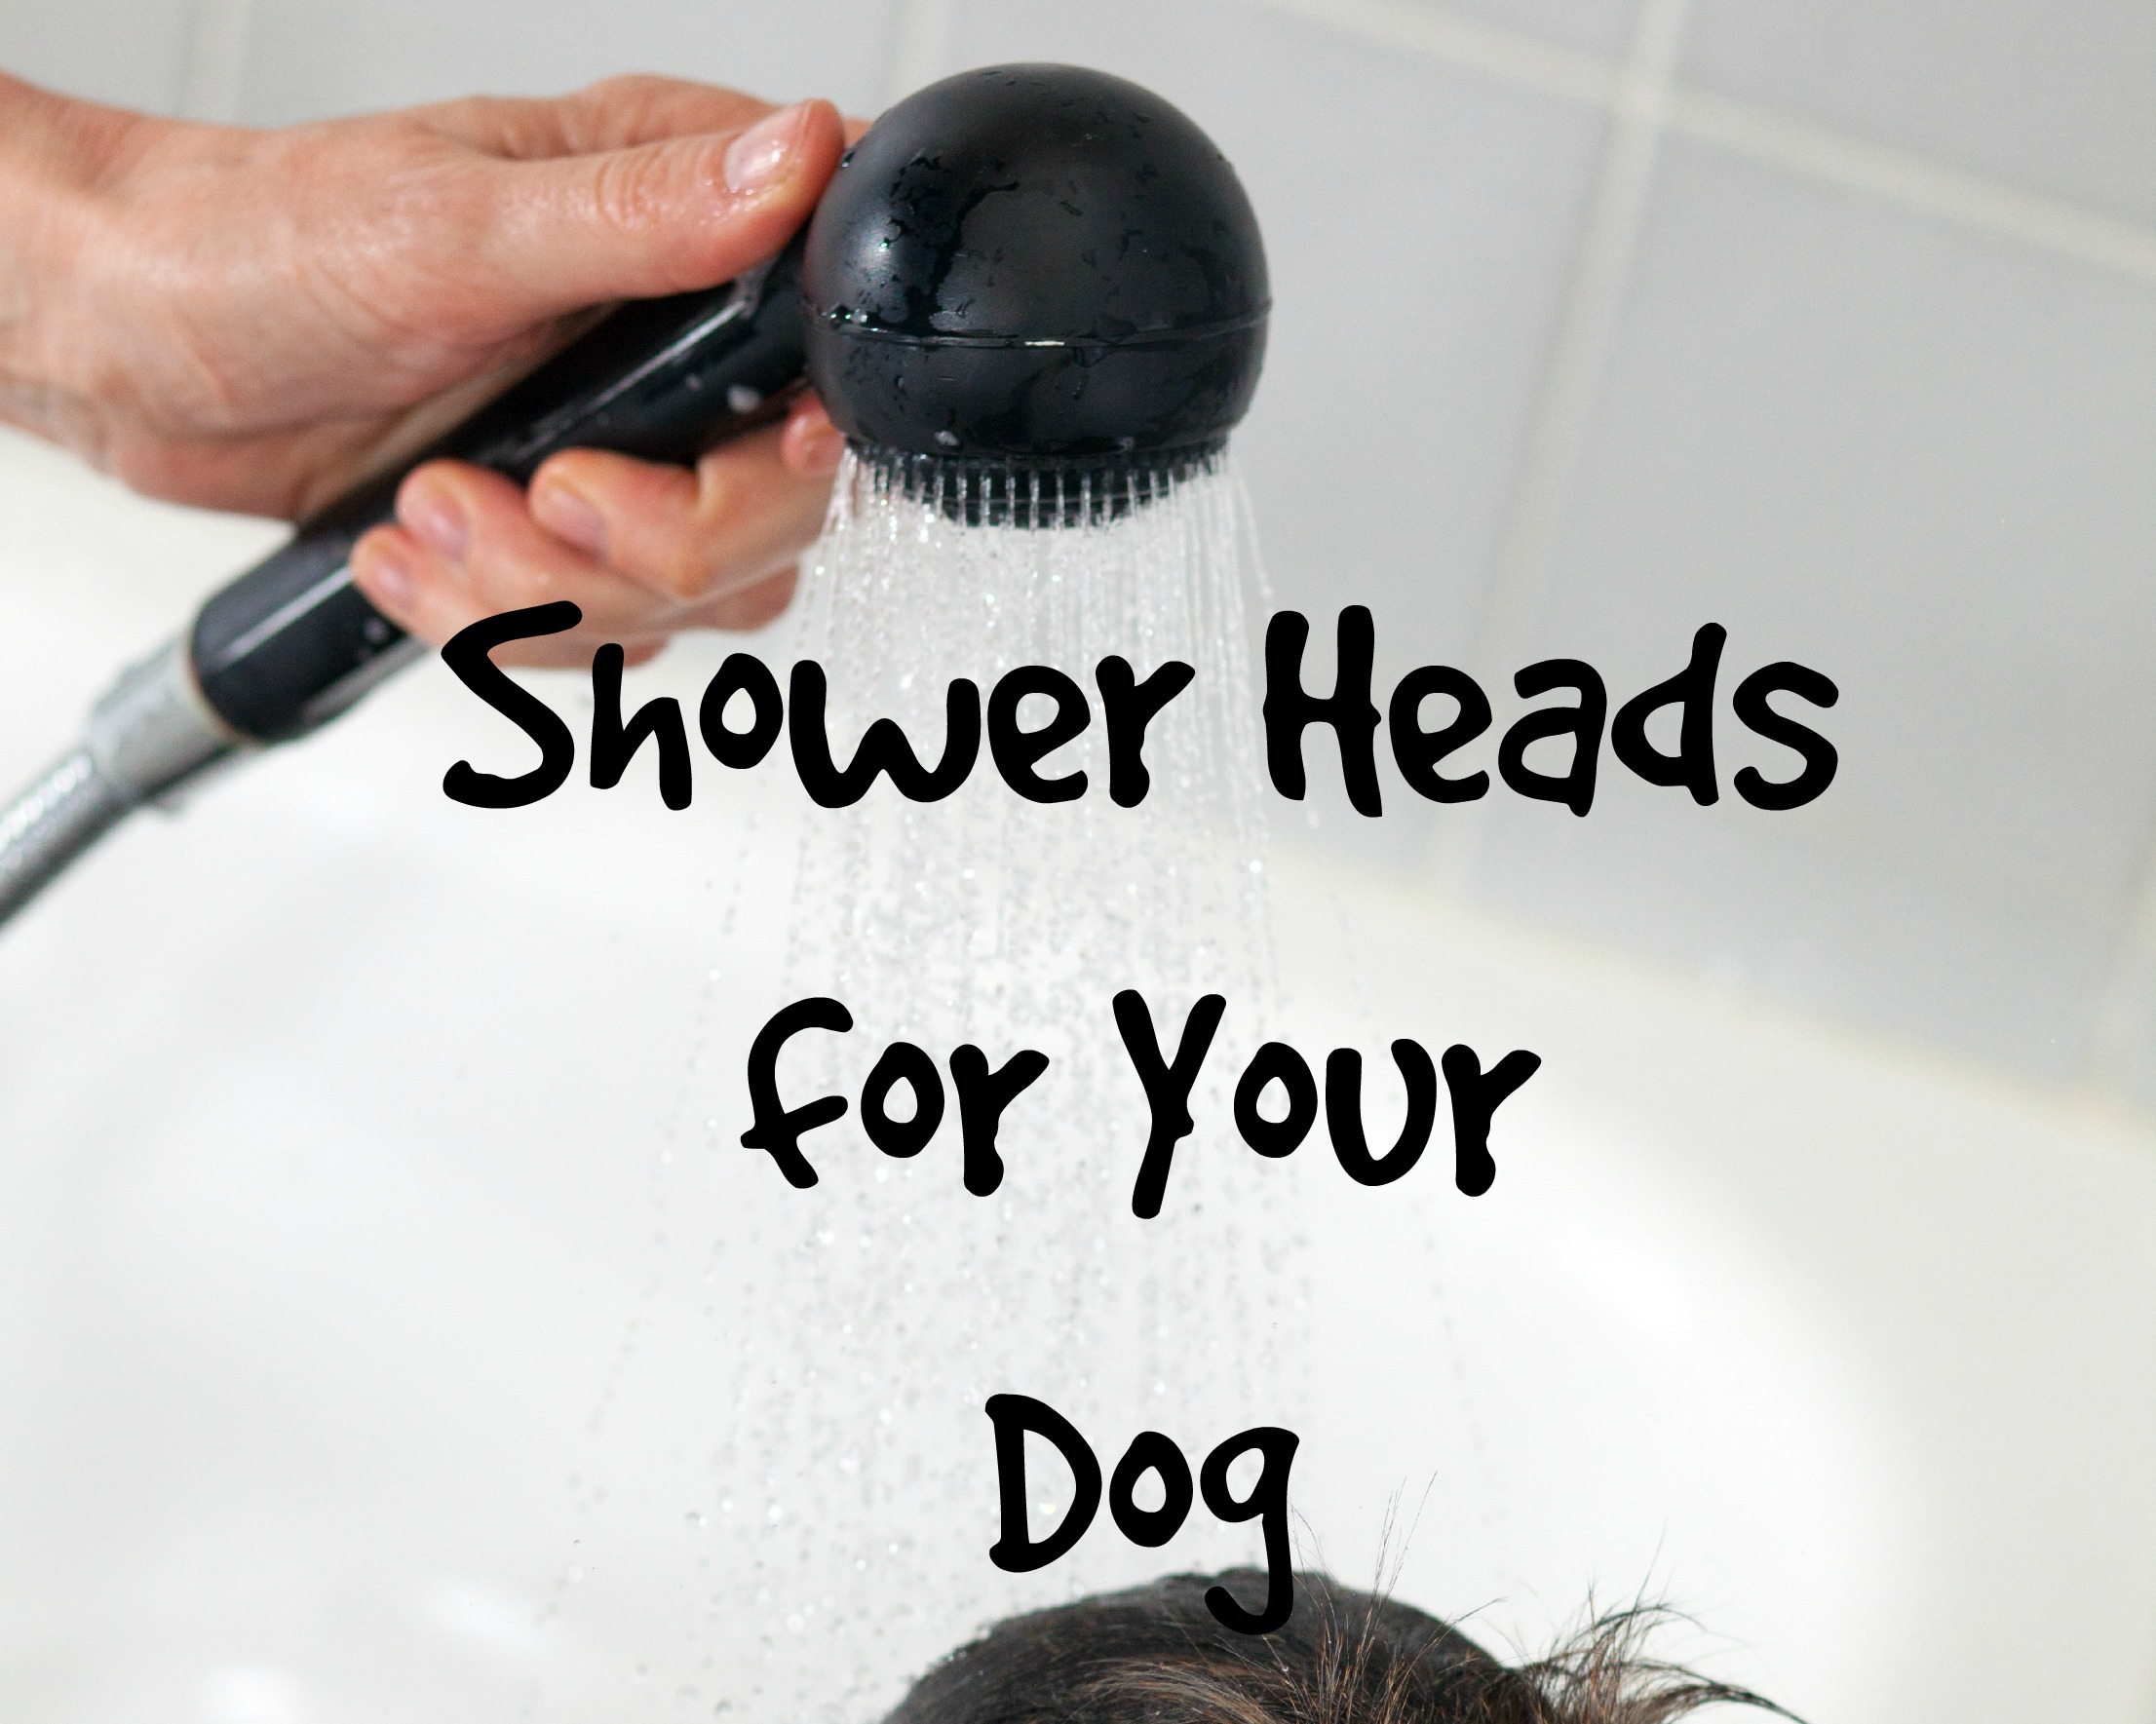 Choosing the Best Shower Heads for Your Dog